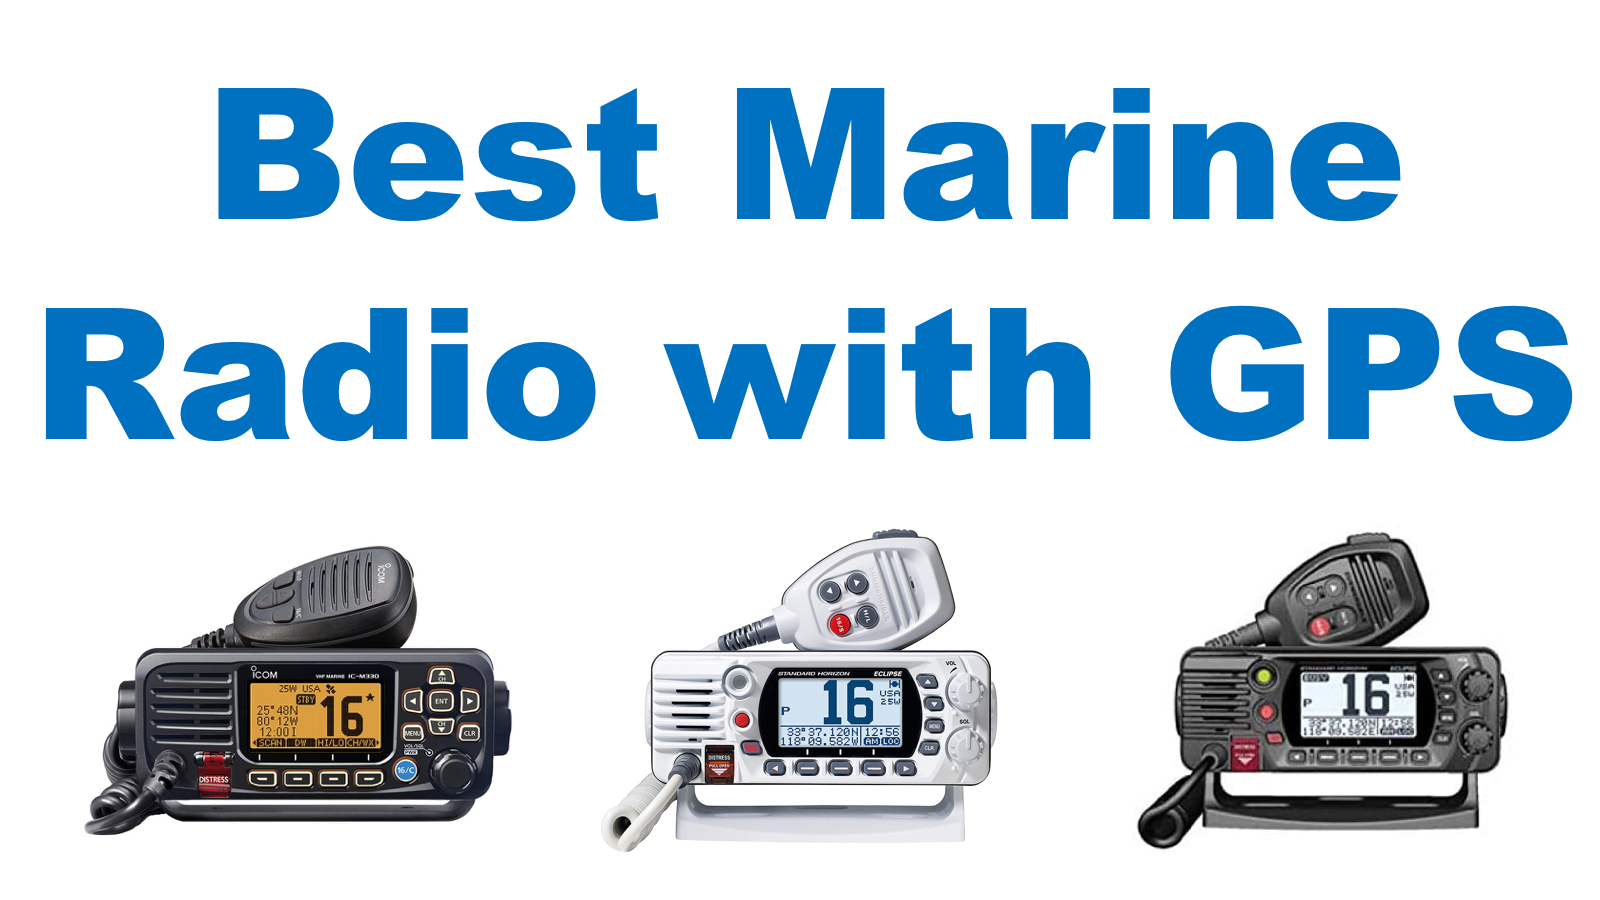 Best Marine Radio with GPS